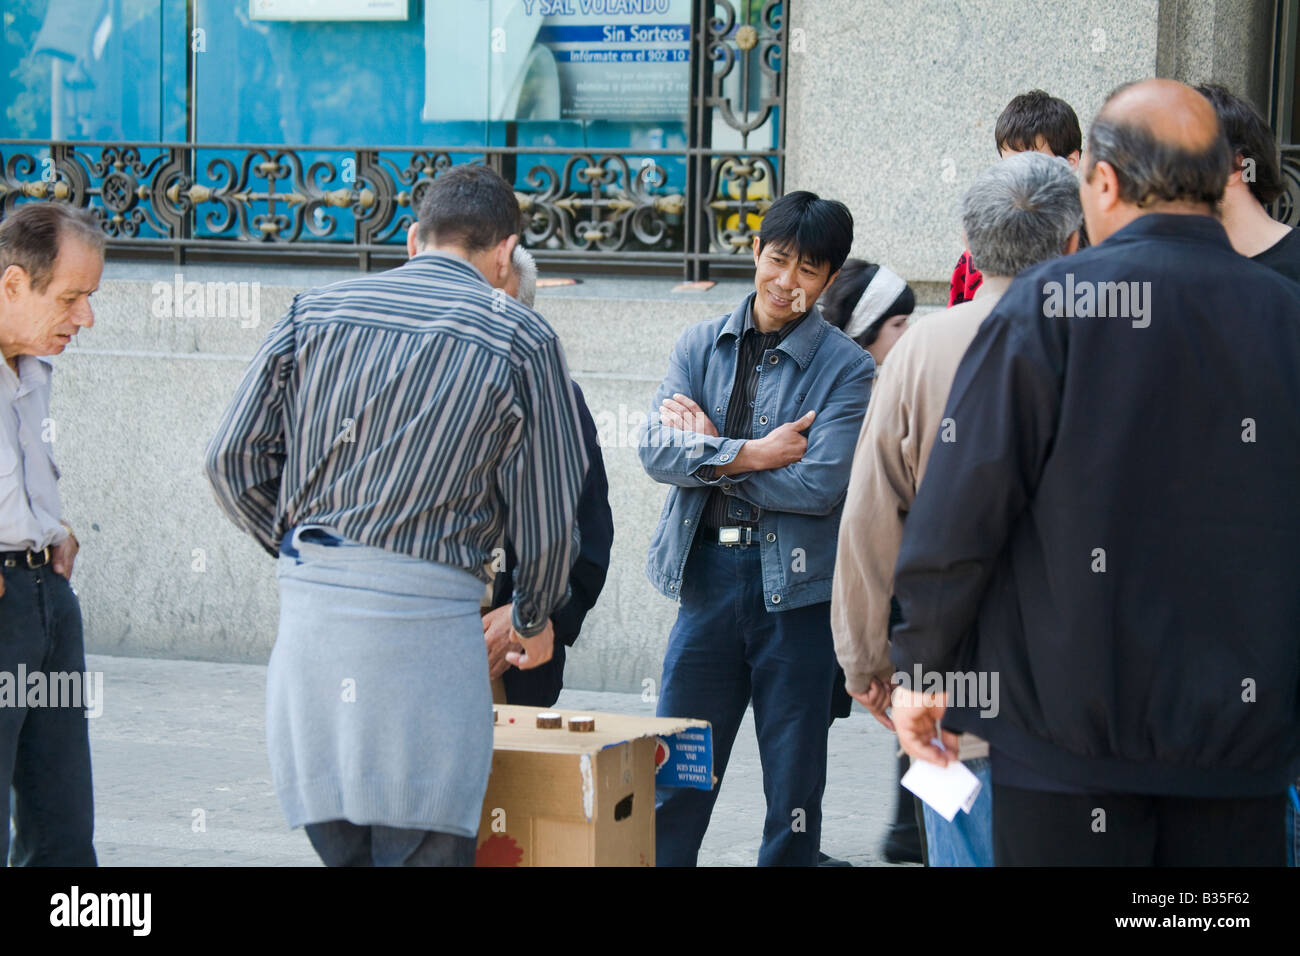 SPAIN Barcelona Man with skeptical expression watch shell game being played on sidewalk - Stock Image